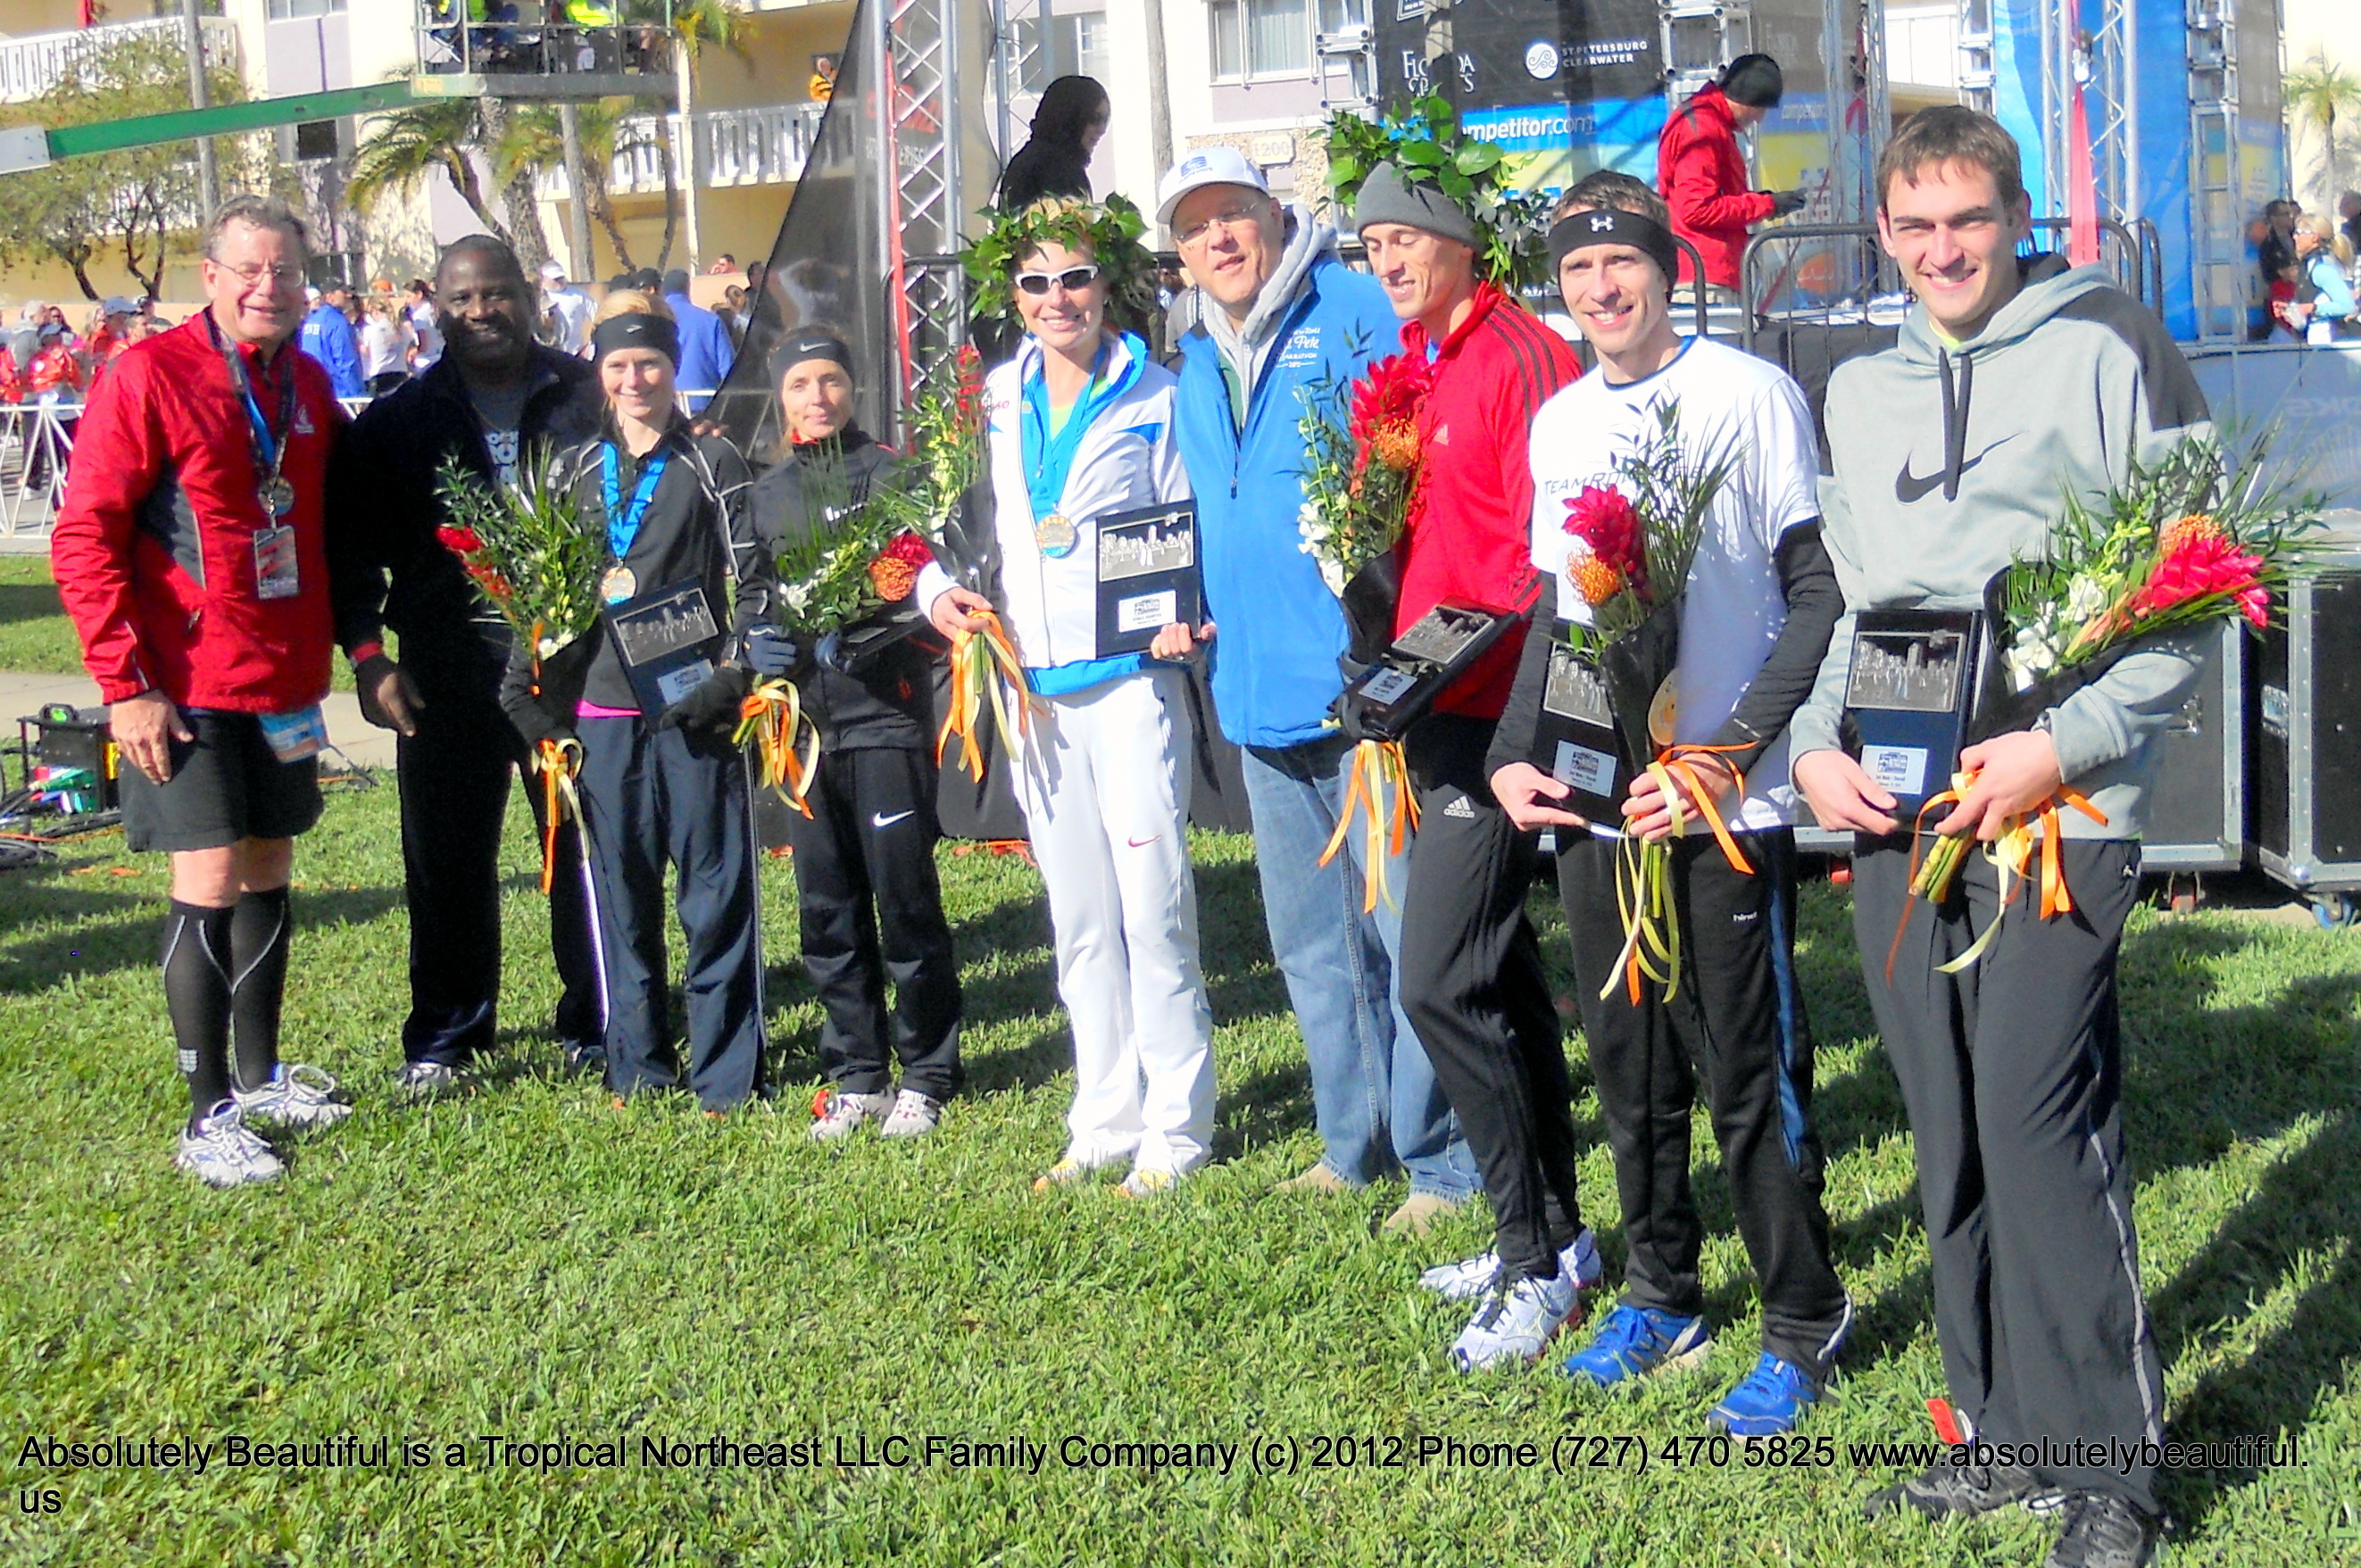 """Photo: Rock 'n' Roll St. Pete Winners with Mayor Bill Foster and City Council Member Wengay M. """"Newt"""" Newton Sr  of the City of St Petersburg Florida with Flowers Made by Absolutely Beautiful Flowers as the Event Florist http://www.absolutelybeautiful.us"""